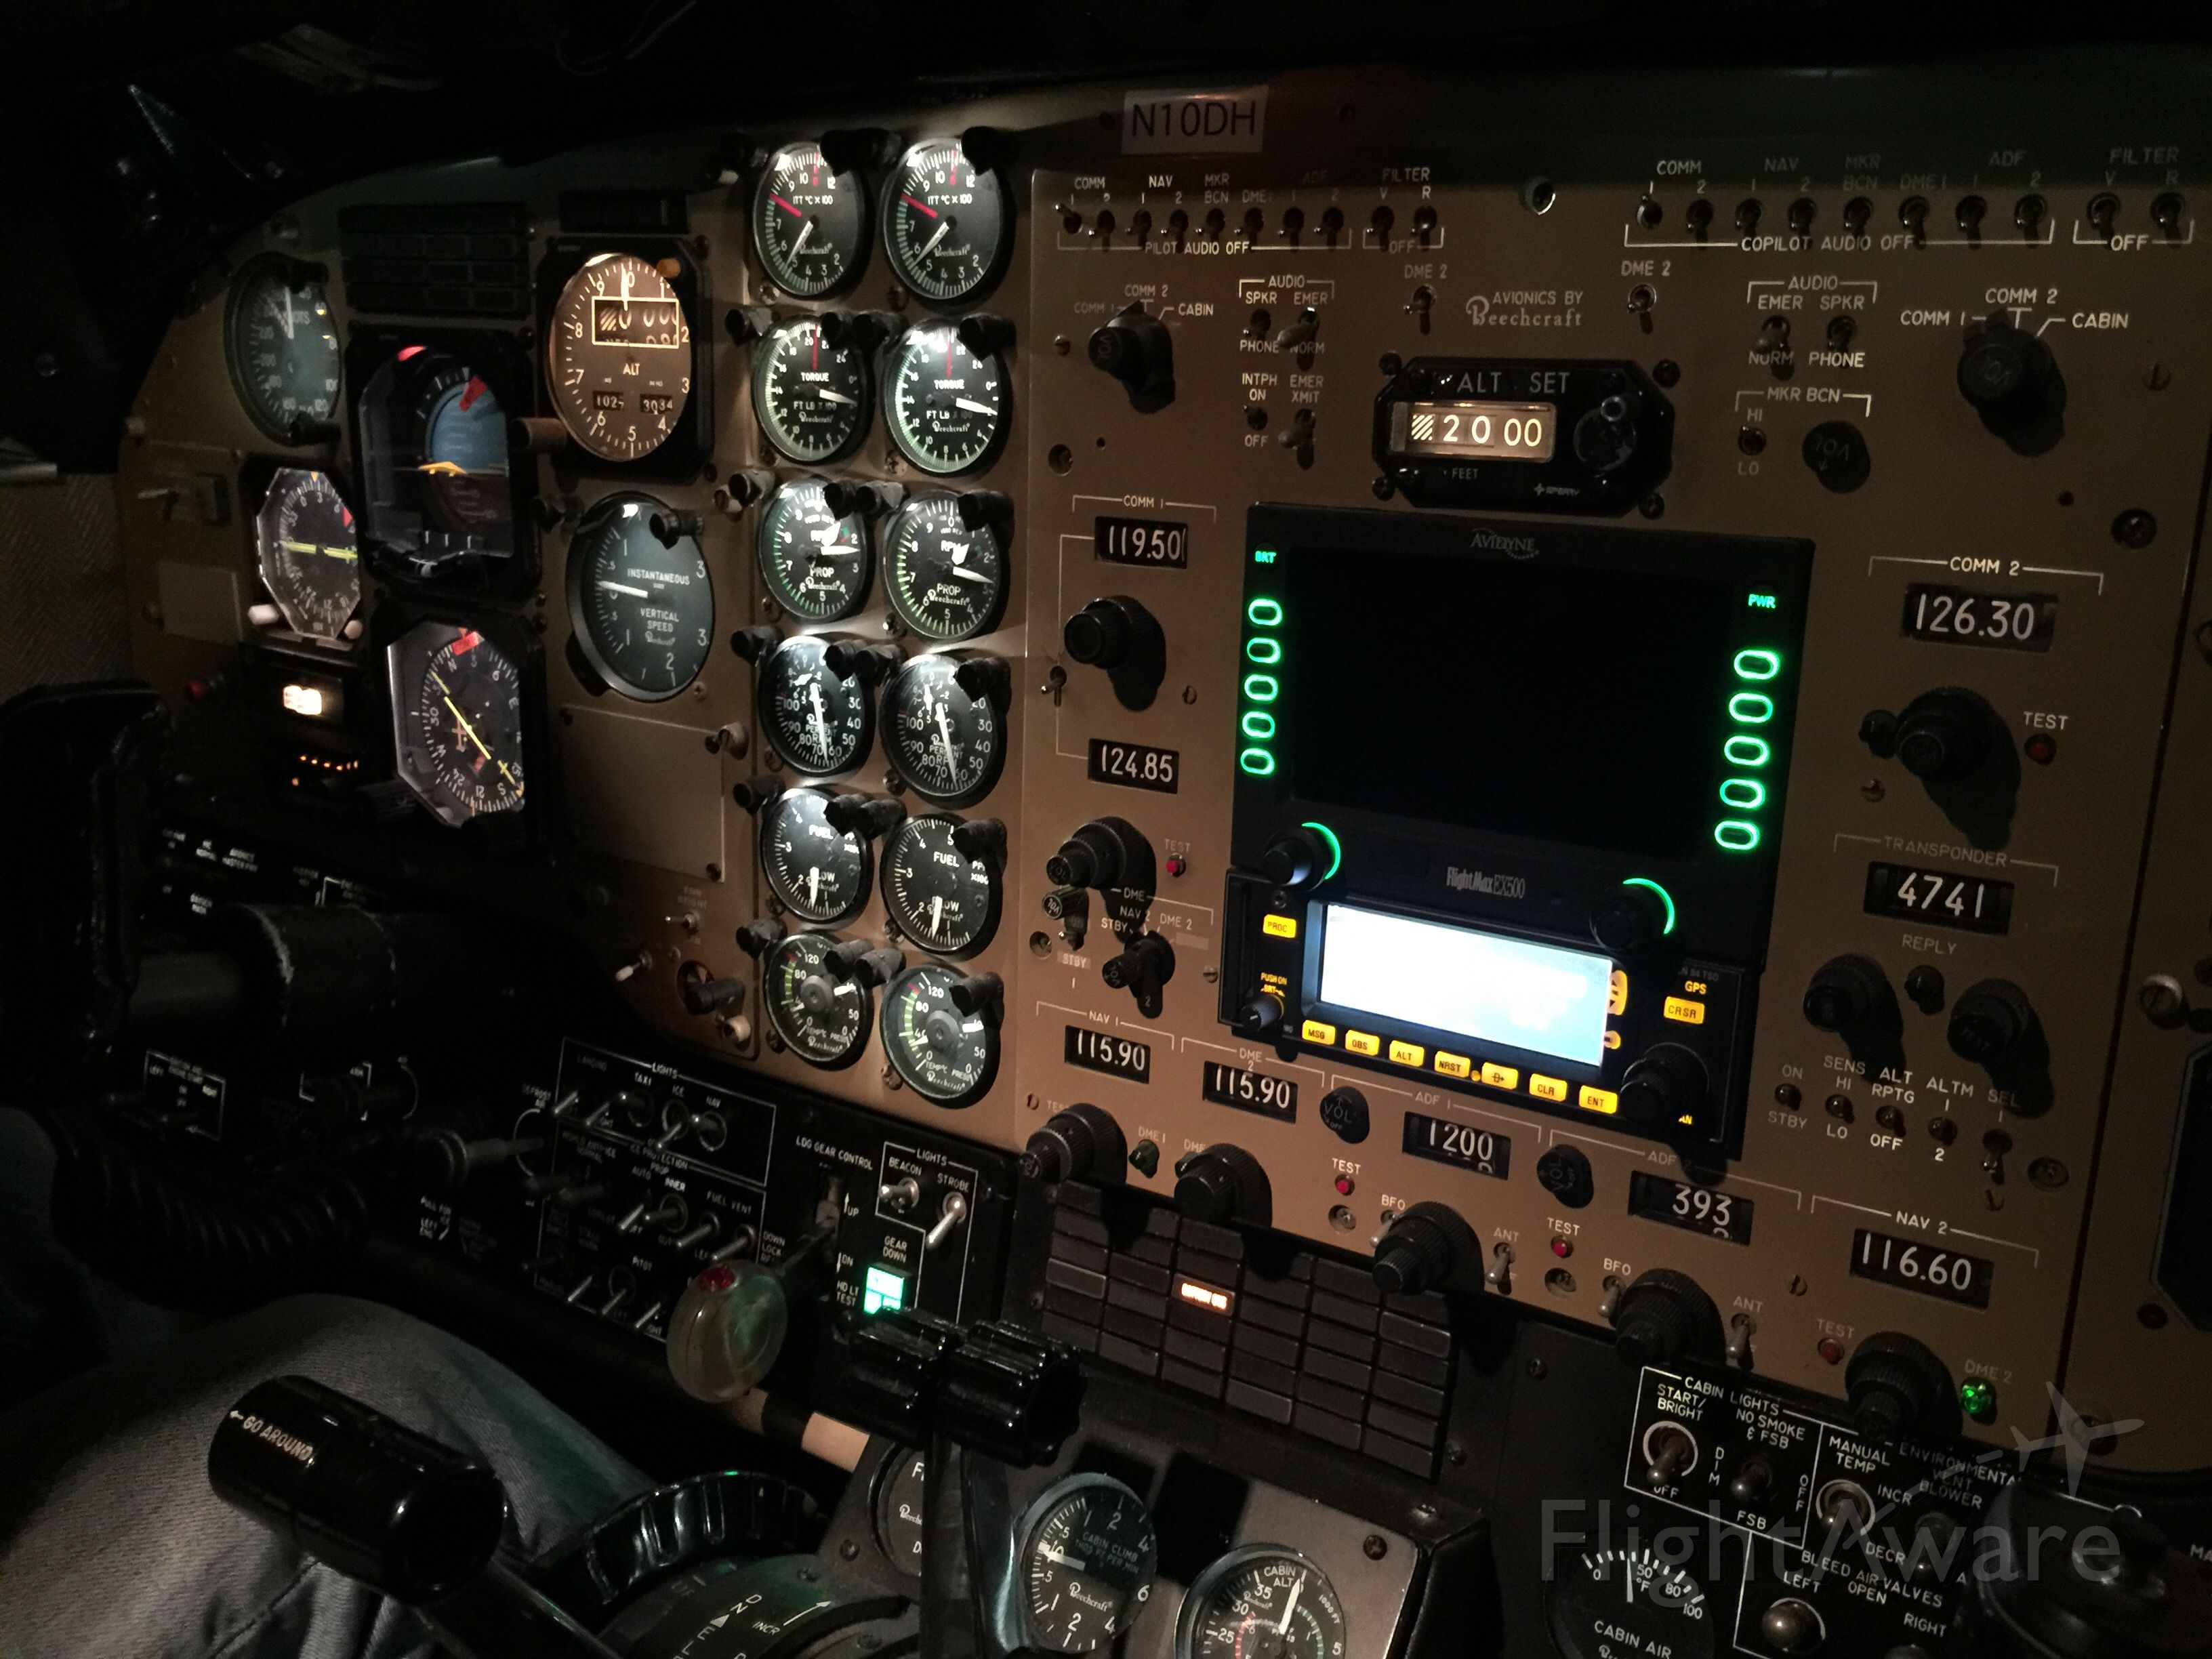 N10DH — - A beautiful night shot of the cockpit of N10DH before a quick trip to AUS.